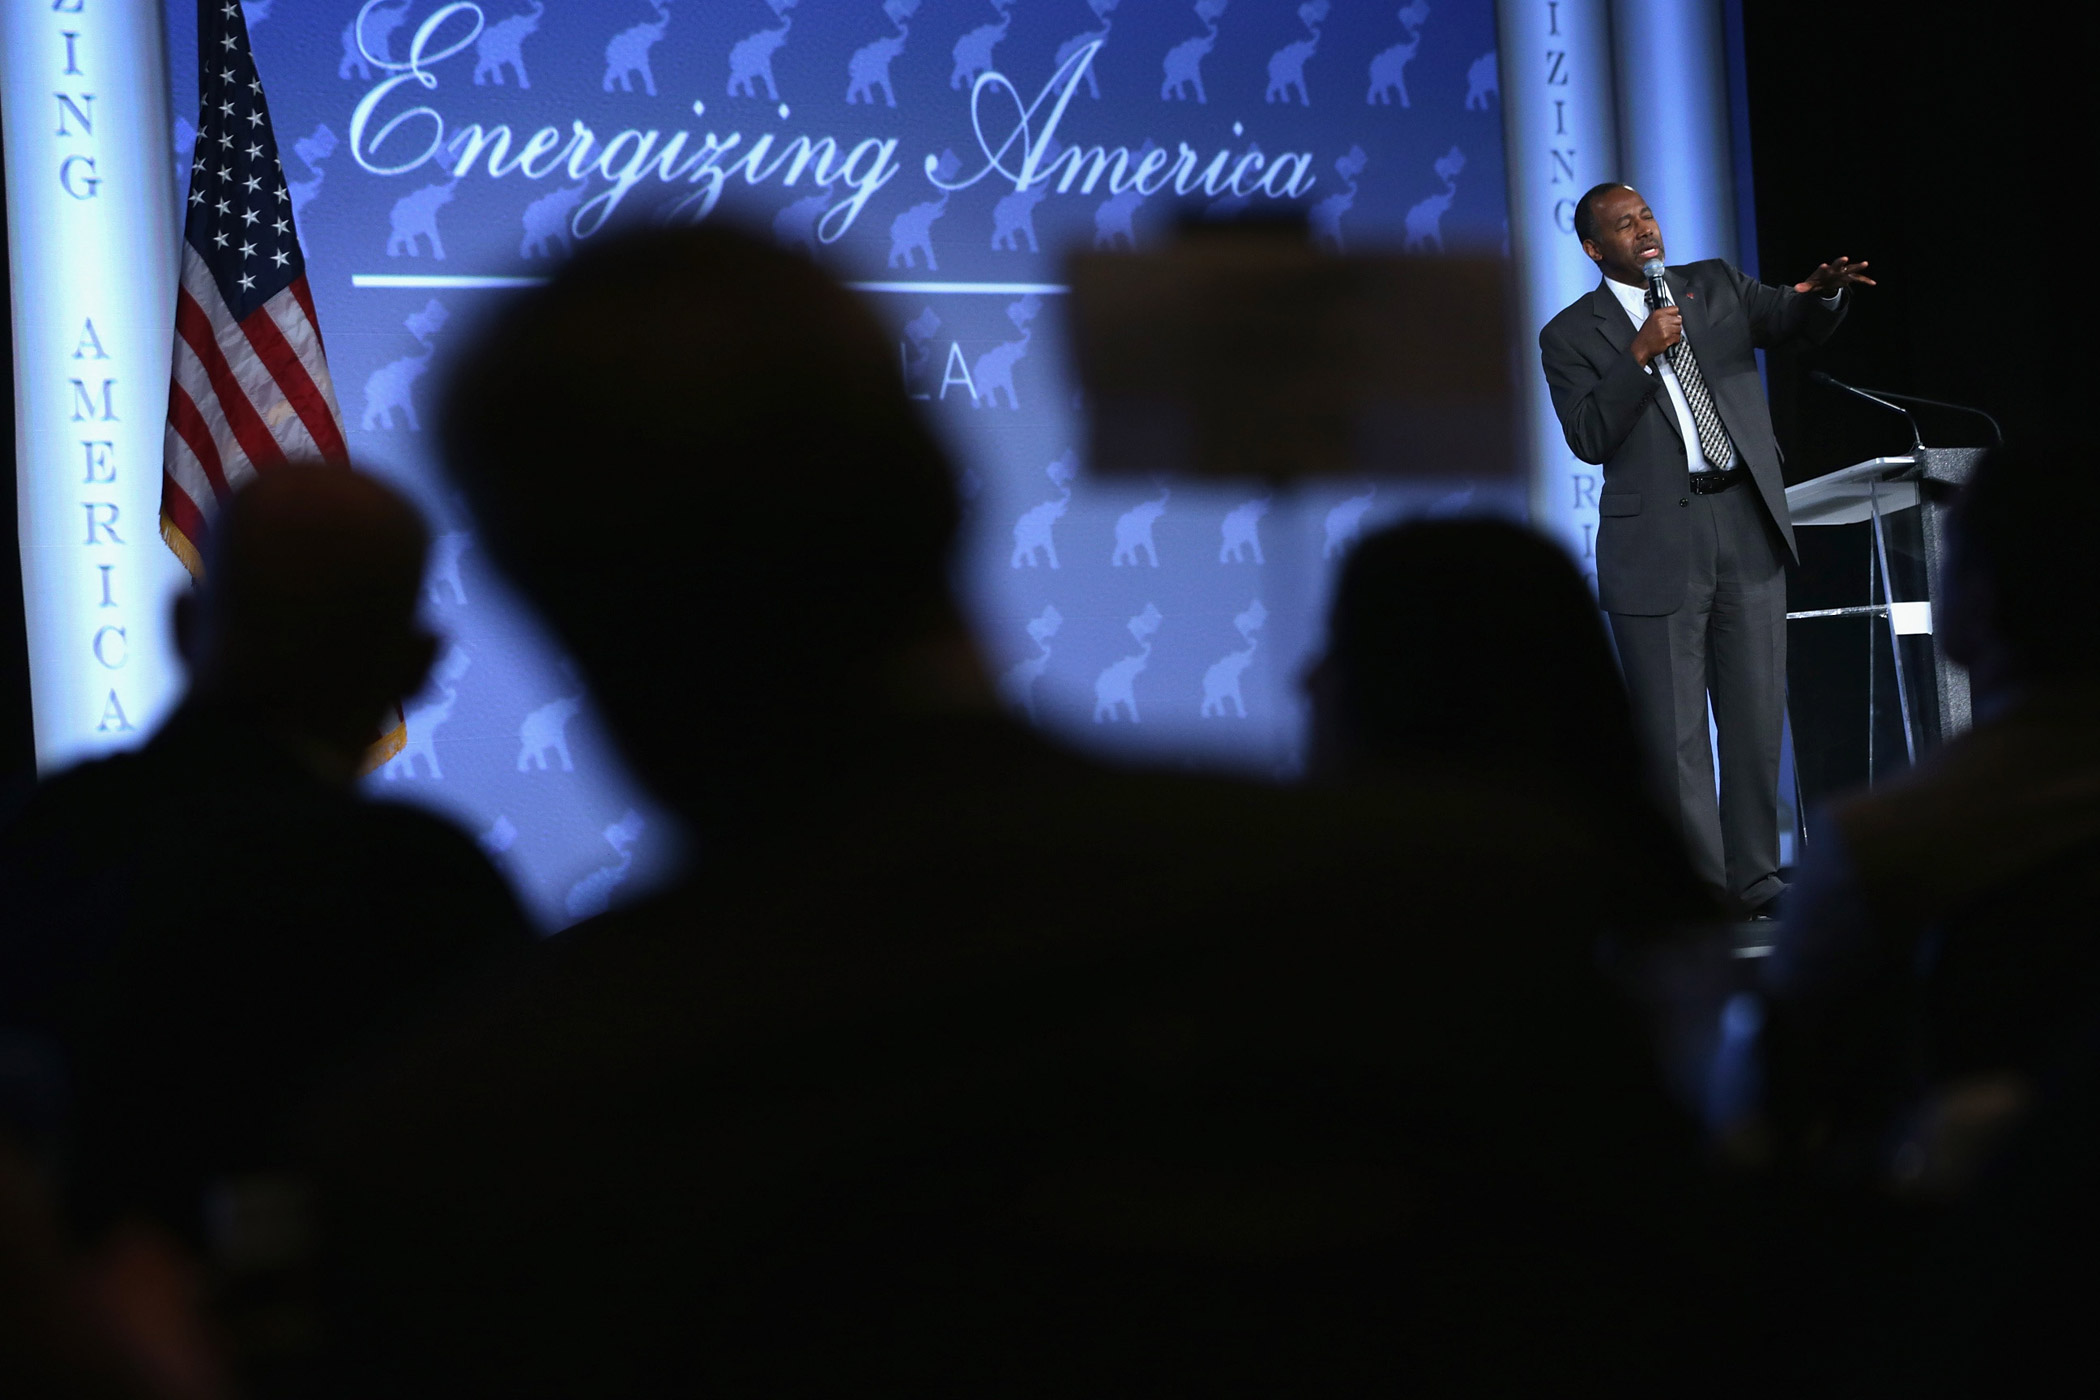 Ben Carson speaks during the Energizing America Gala at the 2015 Southern Republican Leadership Conference May 22, 2015 in Oklahoma City, Okla.